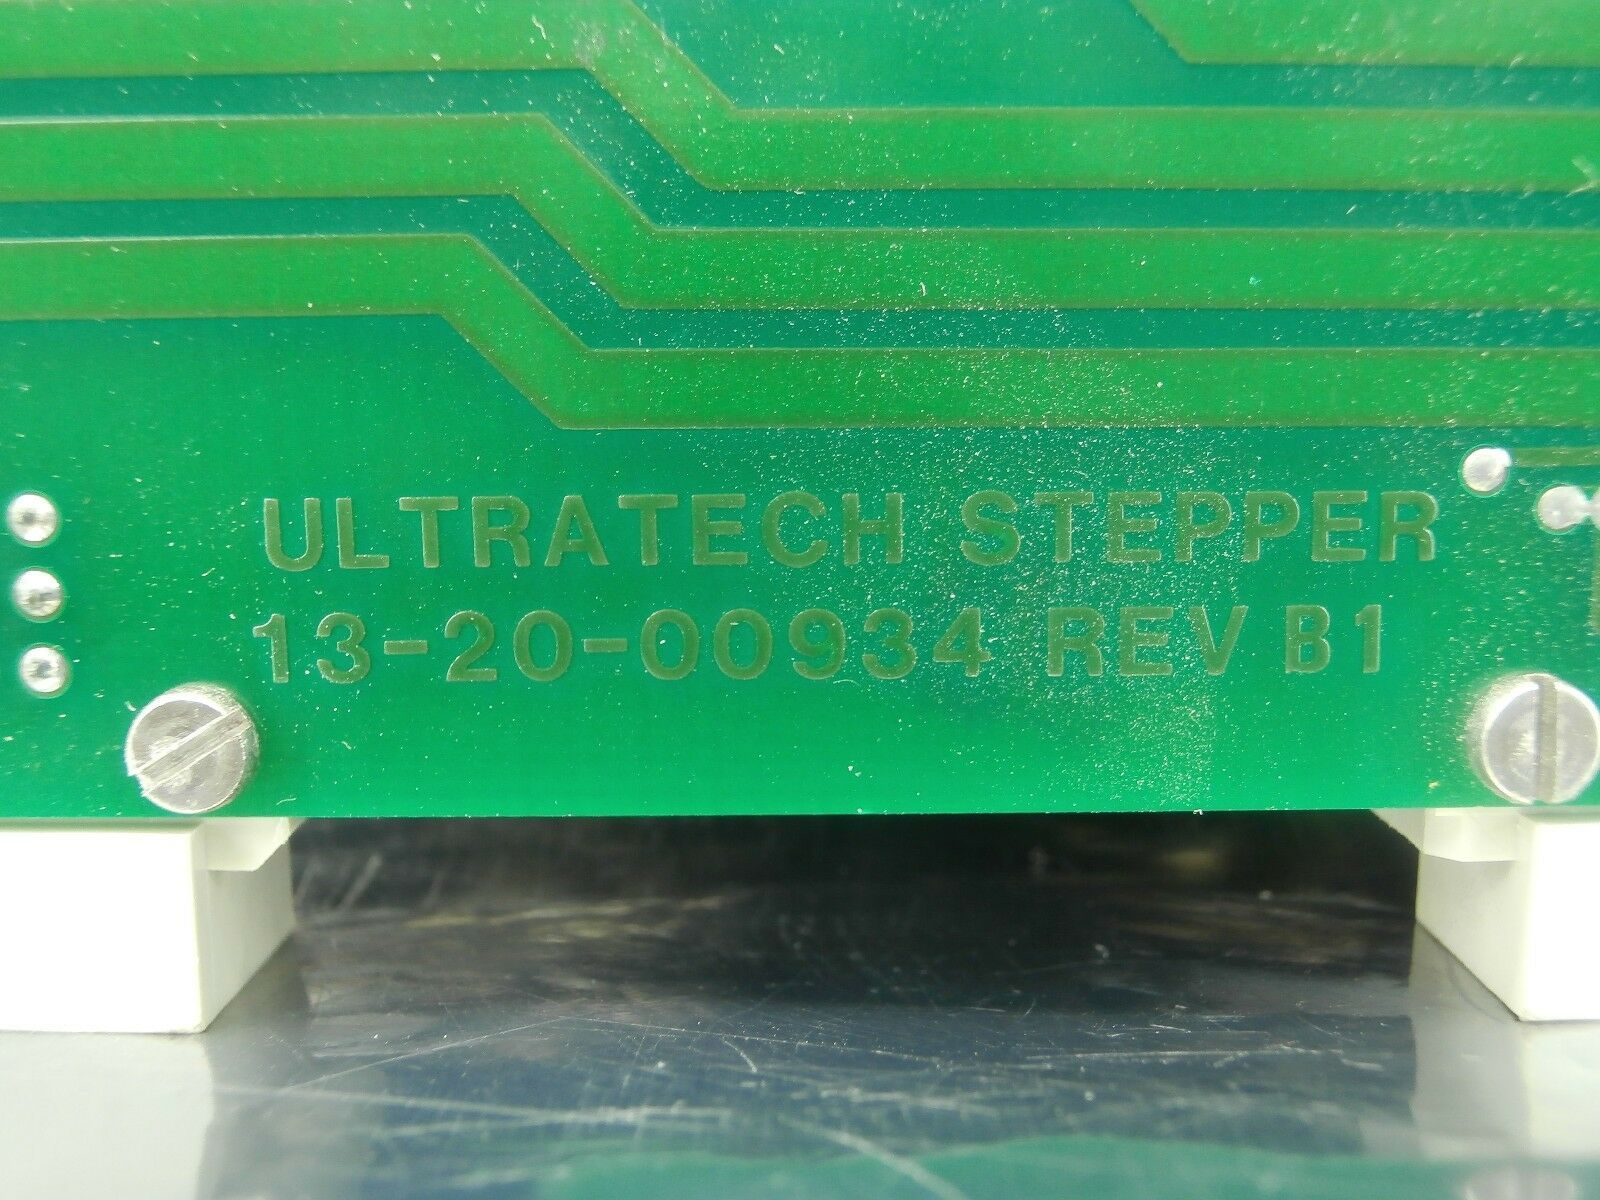 Ultratech Stepper 03-20-00933-02 Switching Power Supply PCB Card Titan 4700 Used